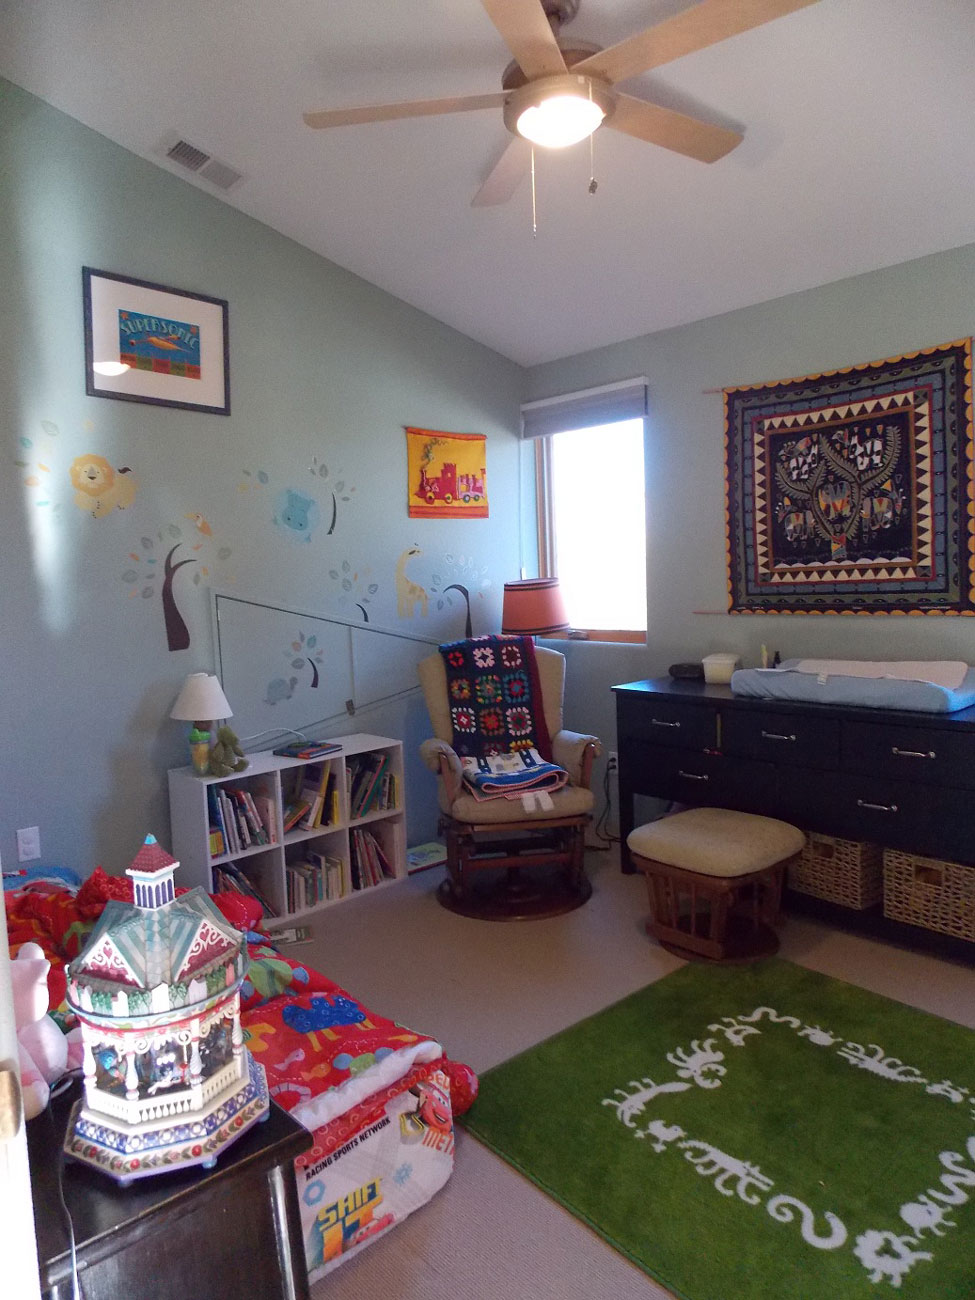 SOUTH-BOULDER-KIDS-ROOM-2-WEB-OPT